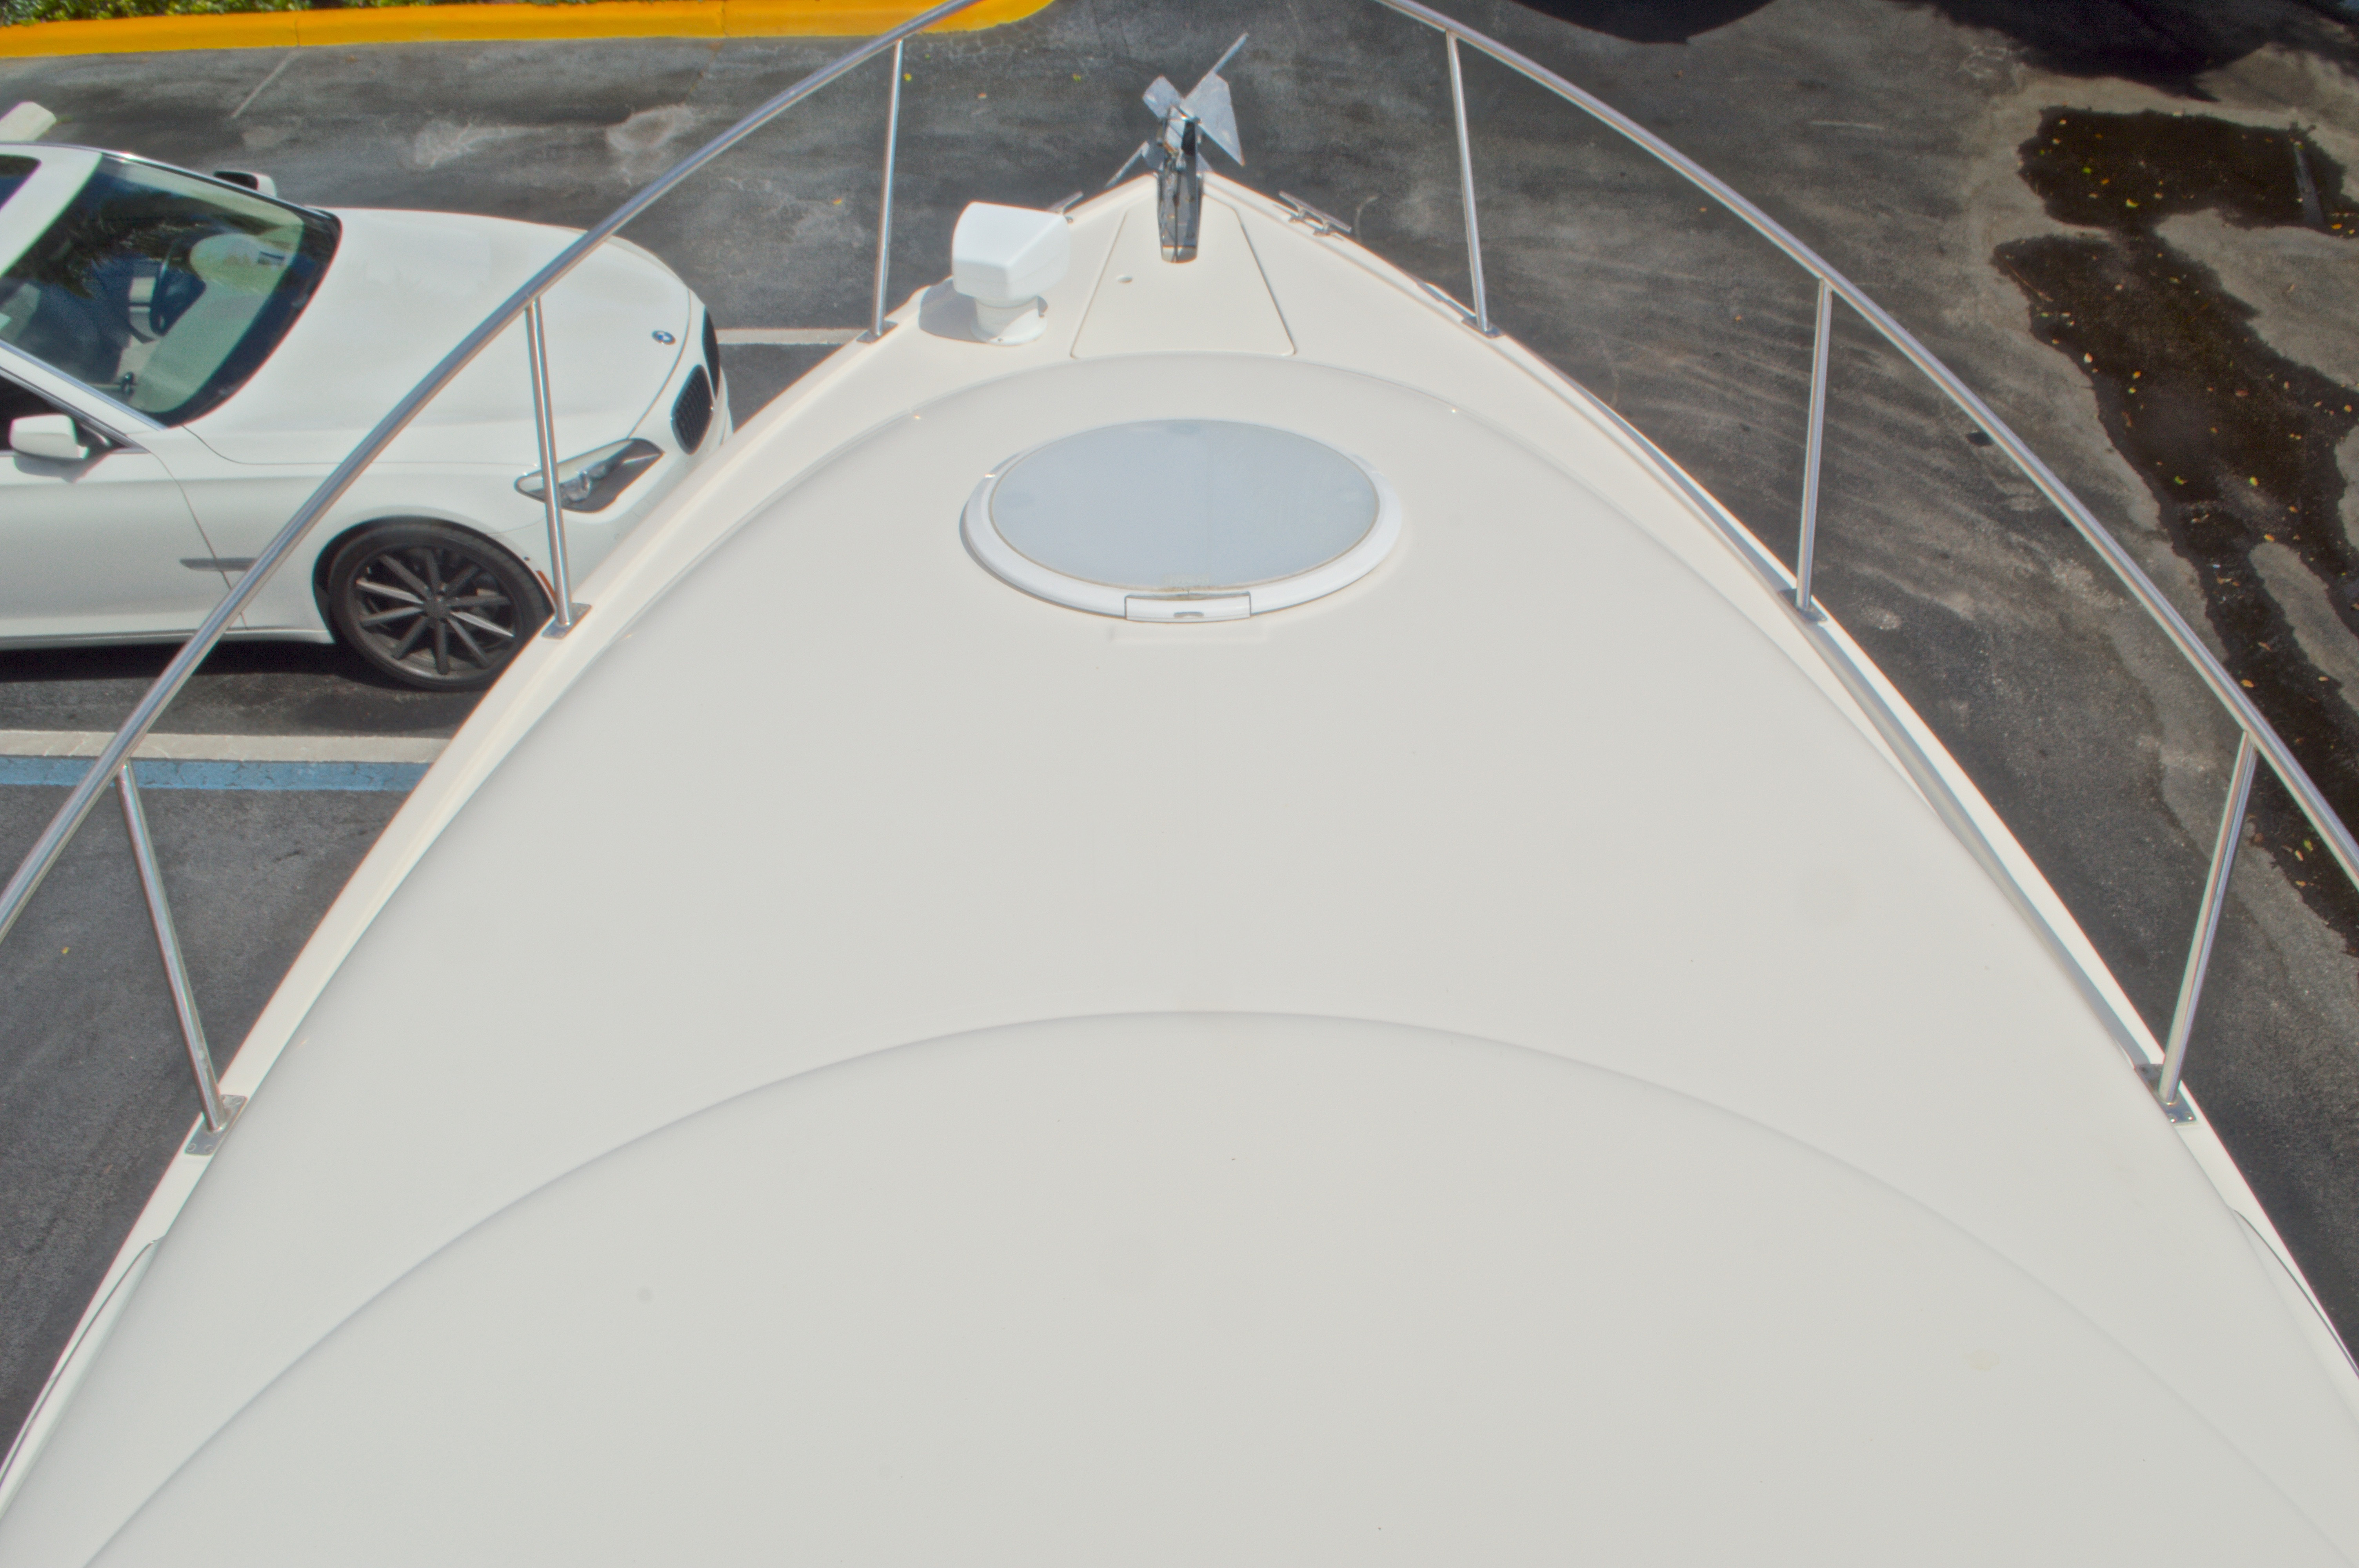 Thumbnail 41 for Used 2002 Monterey 262 Cruiser boat for sale in West Palm Beach, FL